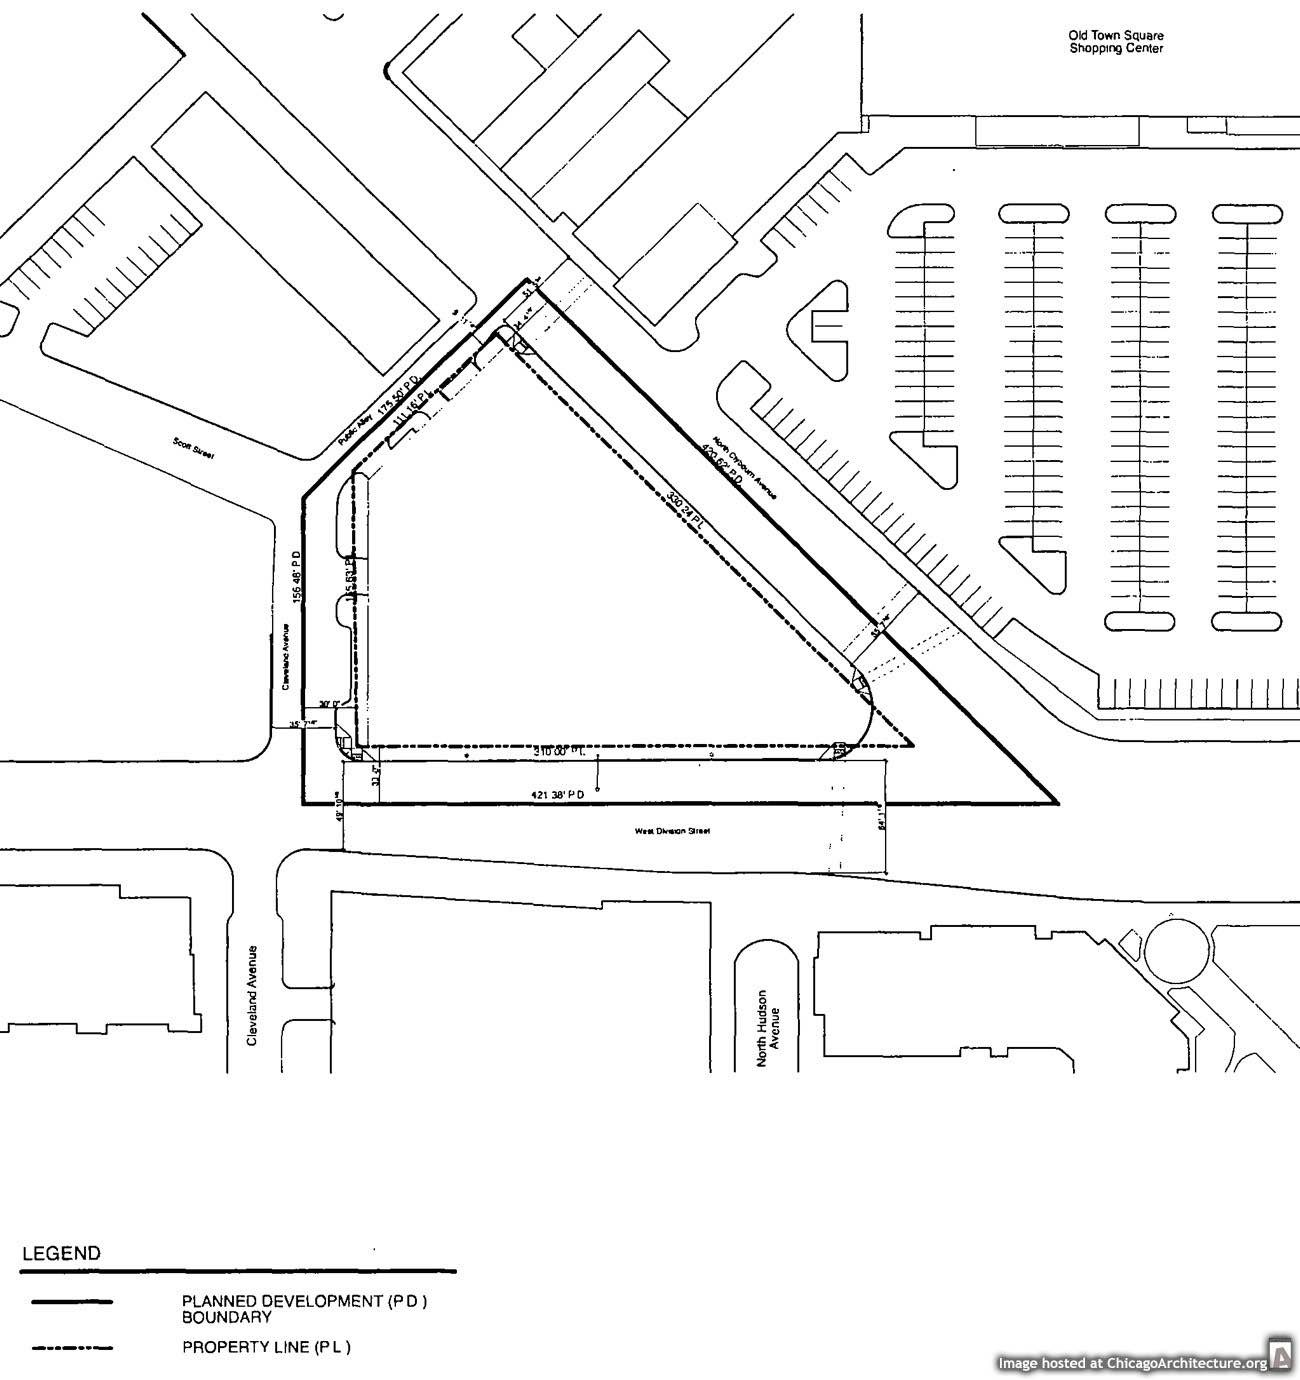 Diagram Of Proposed Building At 442 West Division